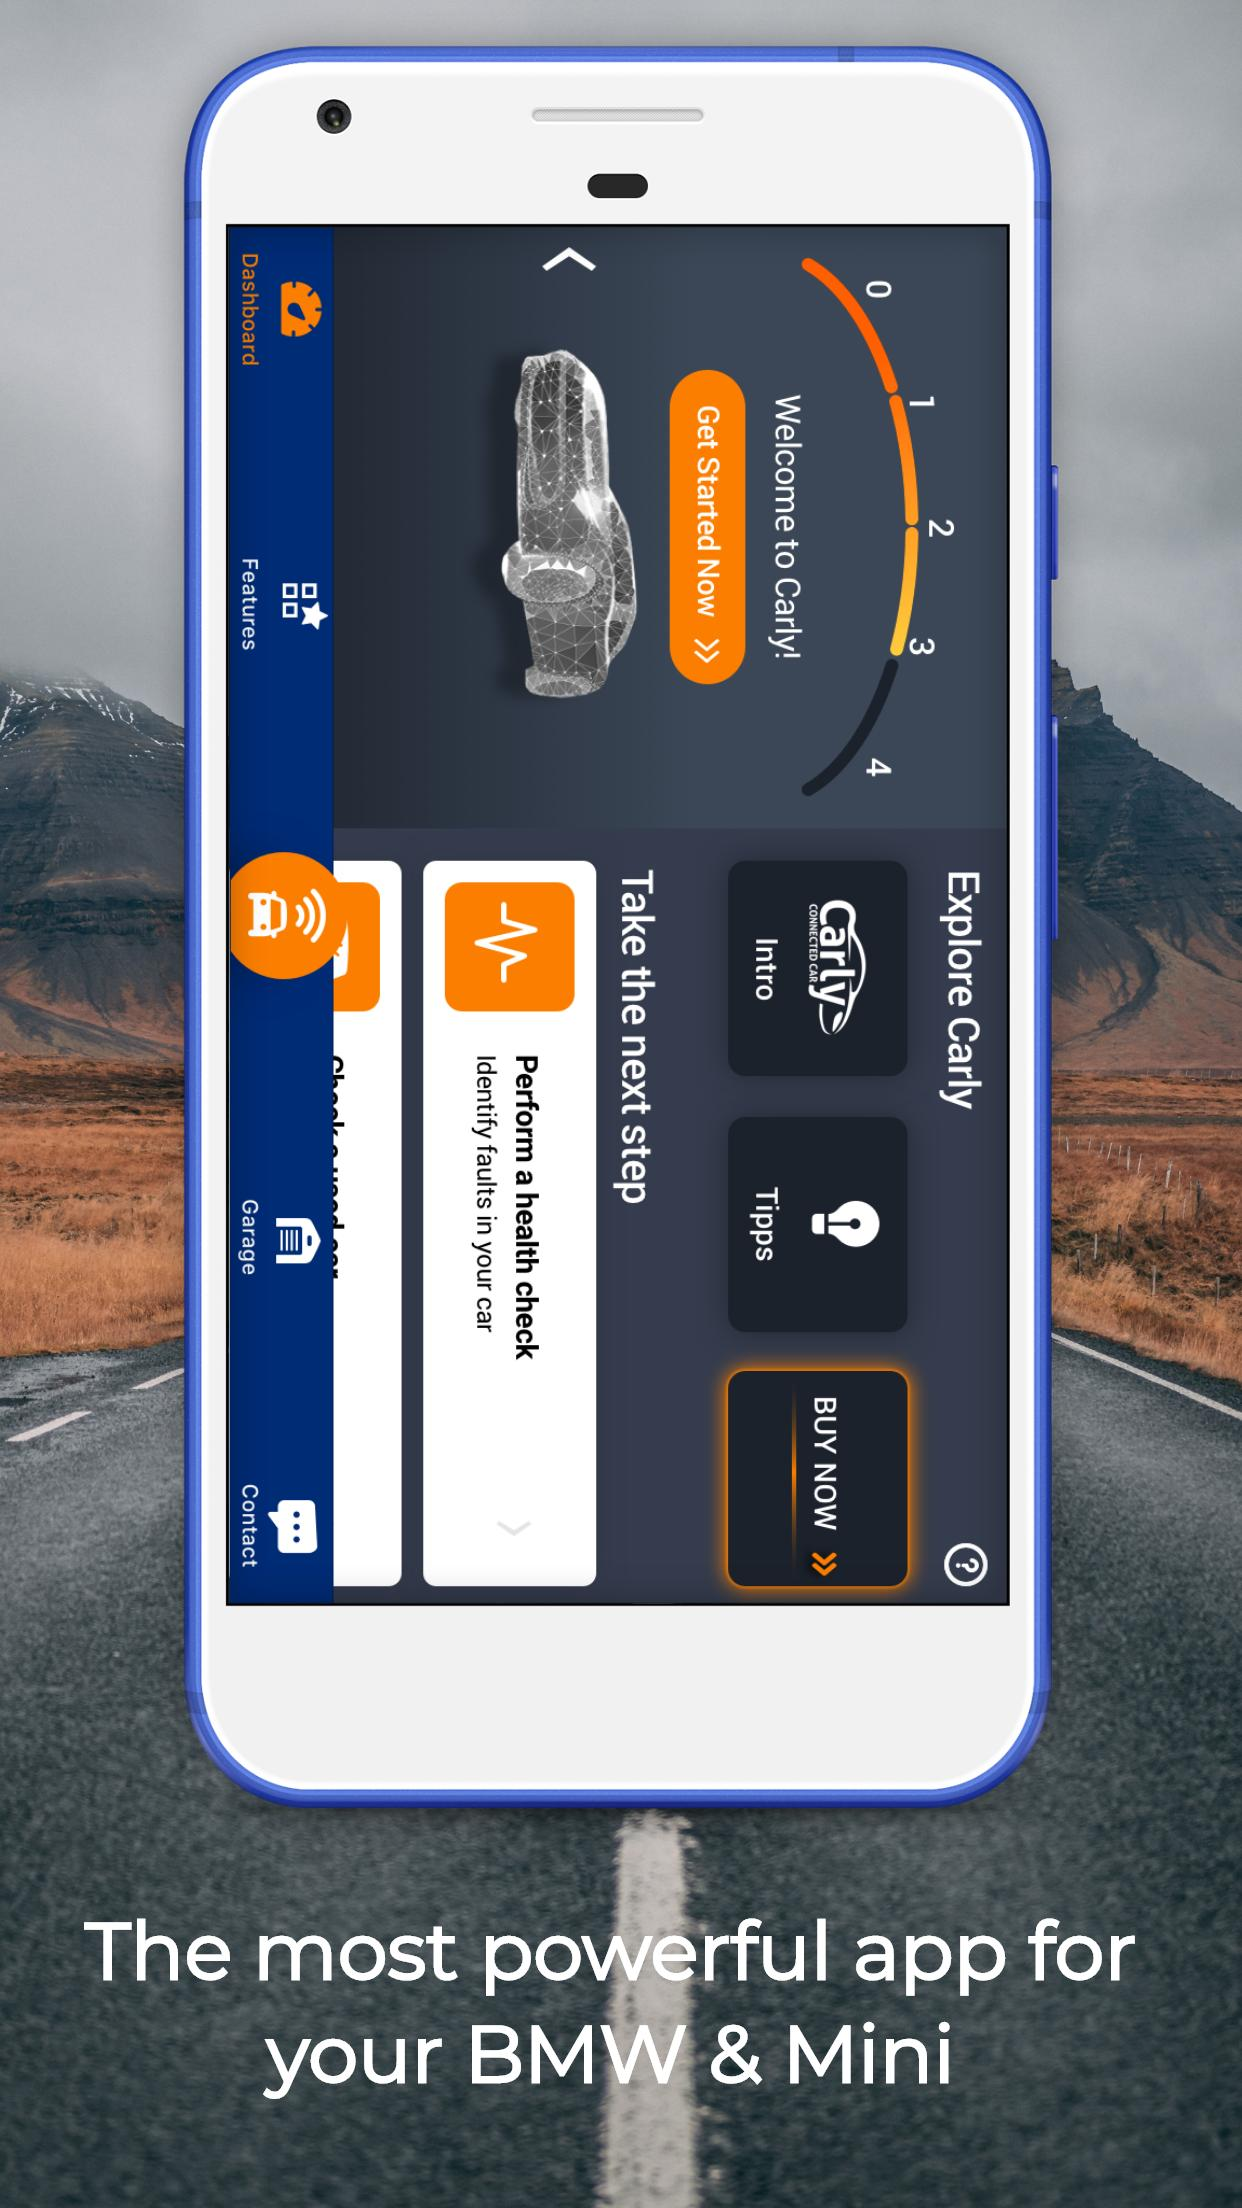 Carly for BMW & Mini for Android - APK Download